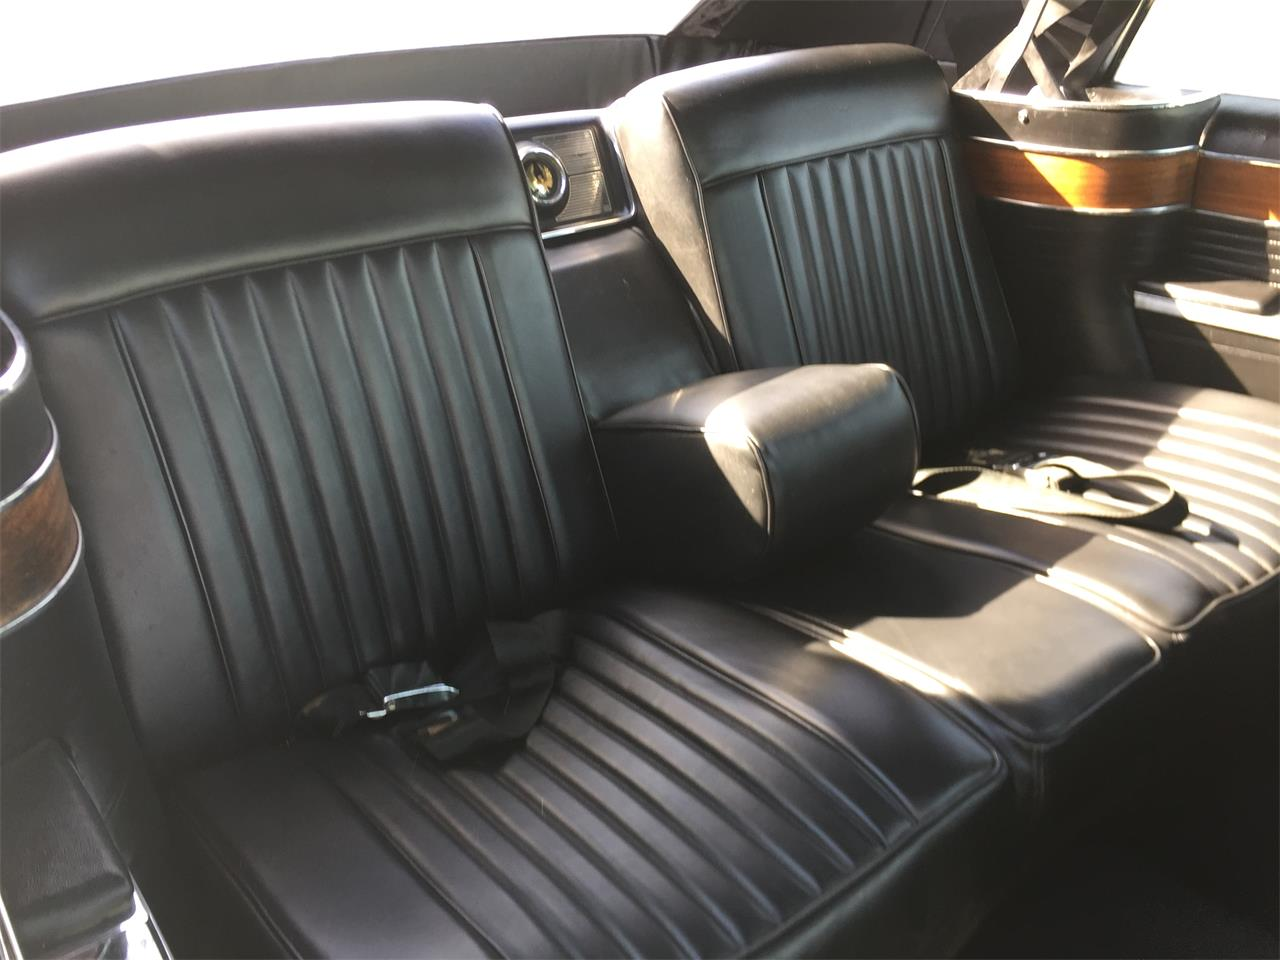 Large Picture of '66 Chrysler Imperial - $24,400.00 - N5J6